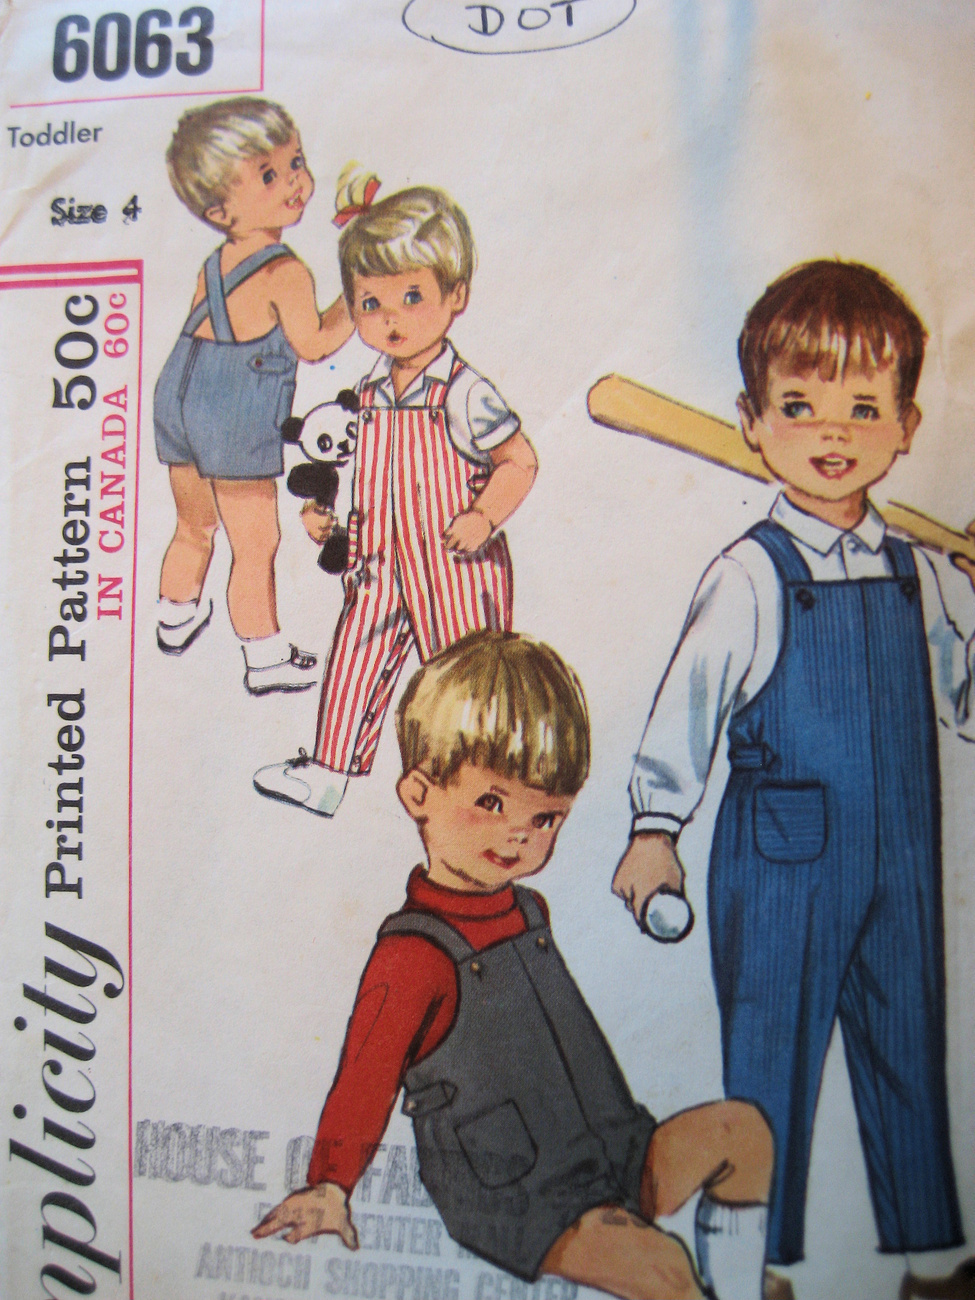 Vintage 1960s Pattern Toddler Size 4 Overalls S6063 Simplicity New Look